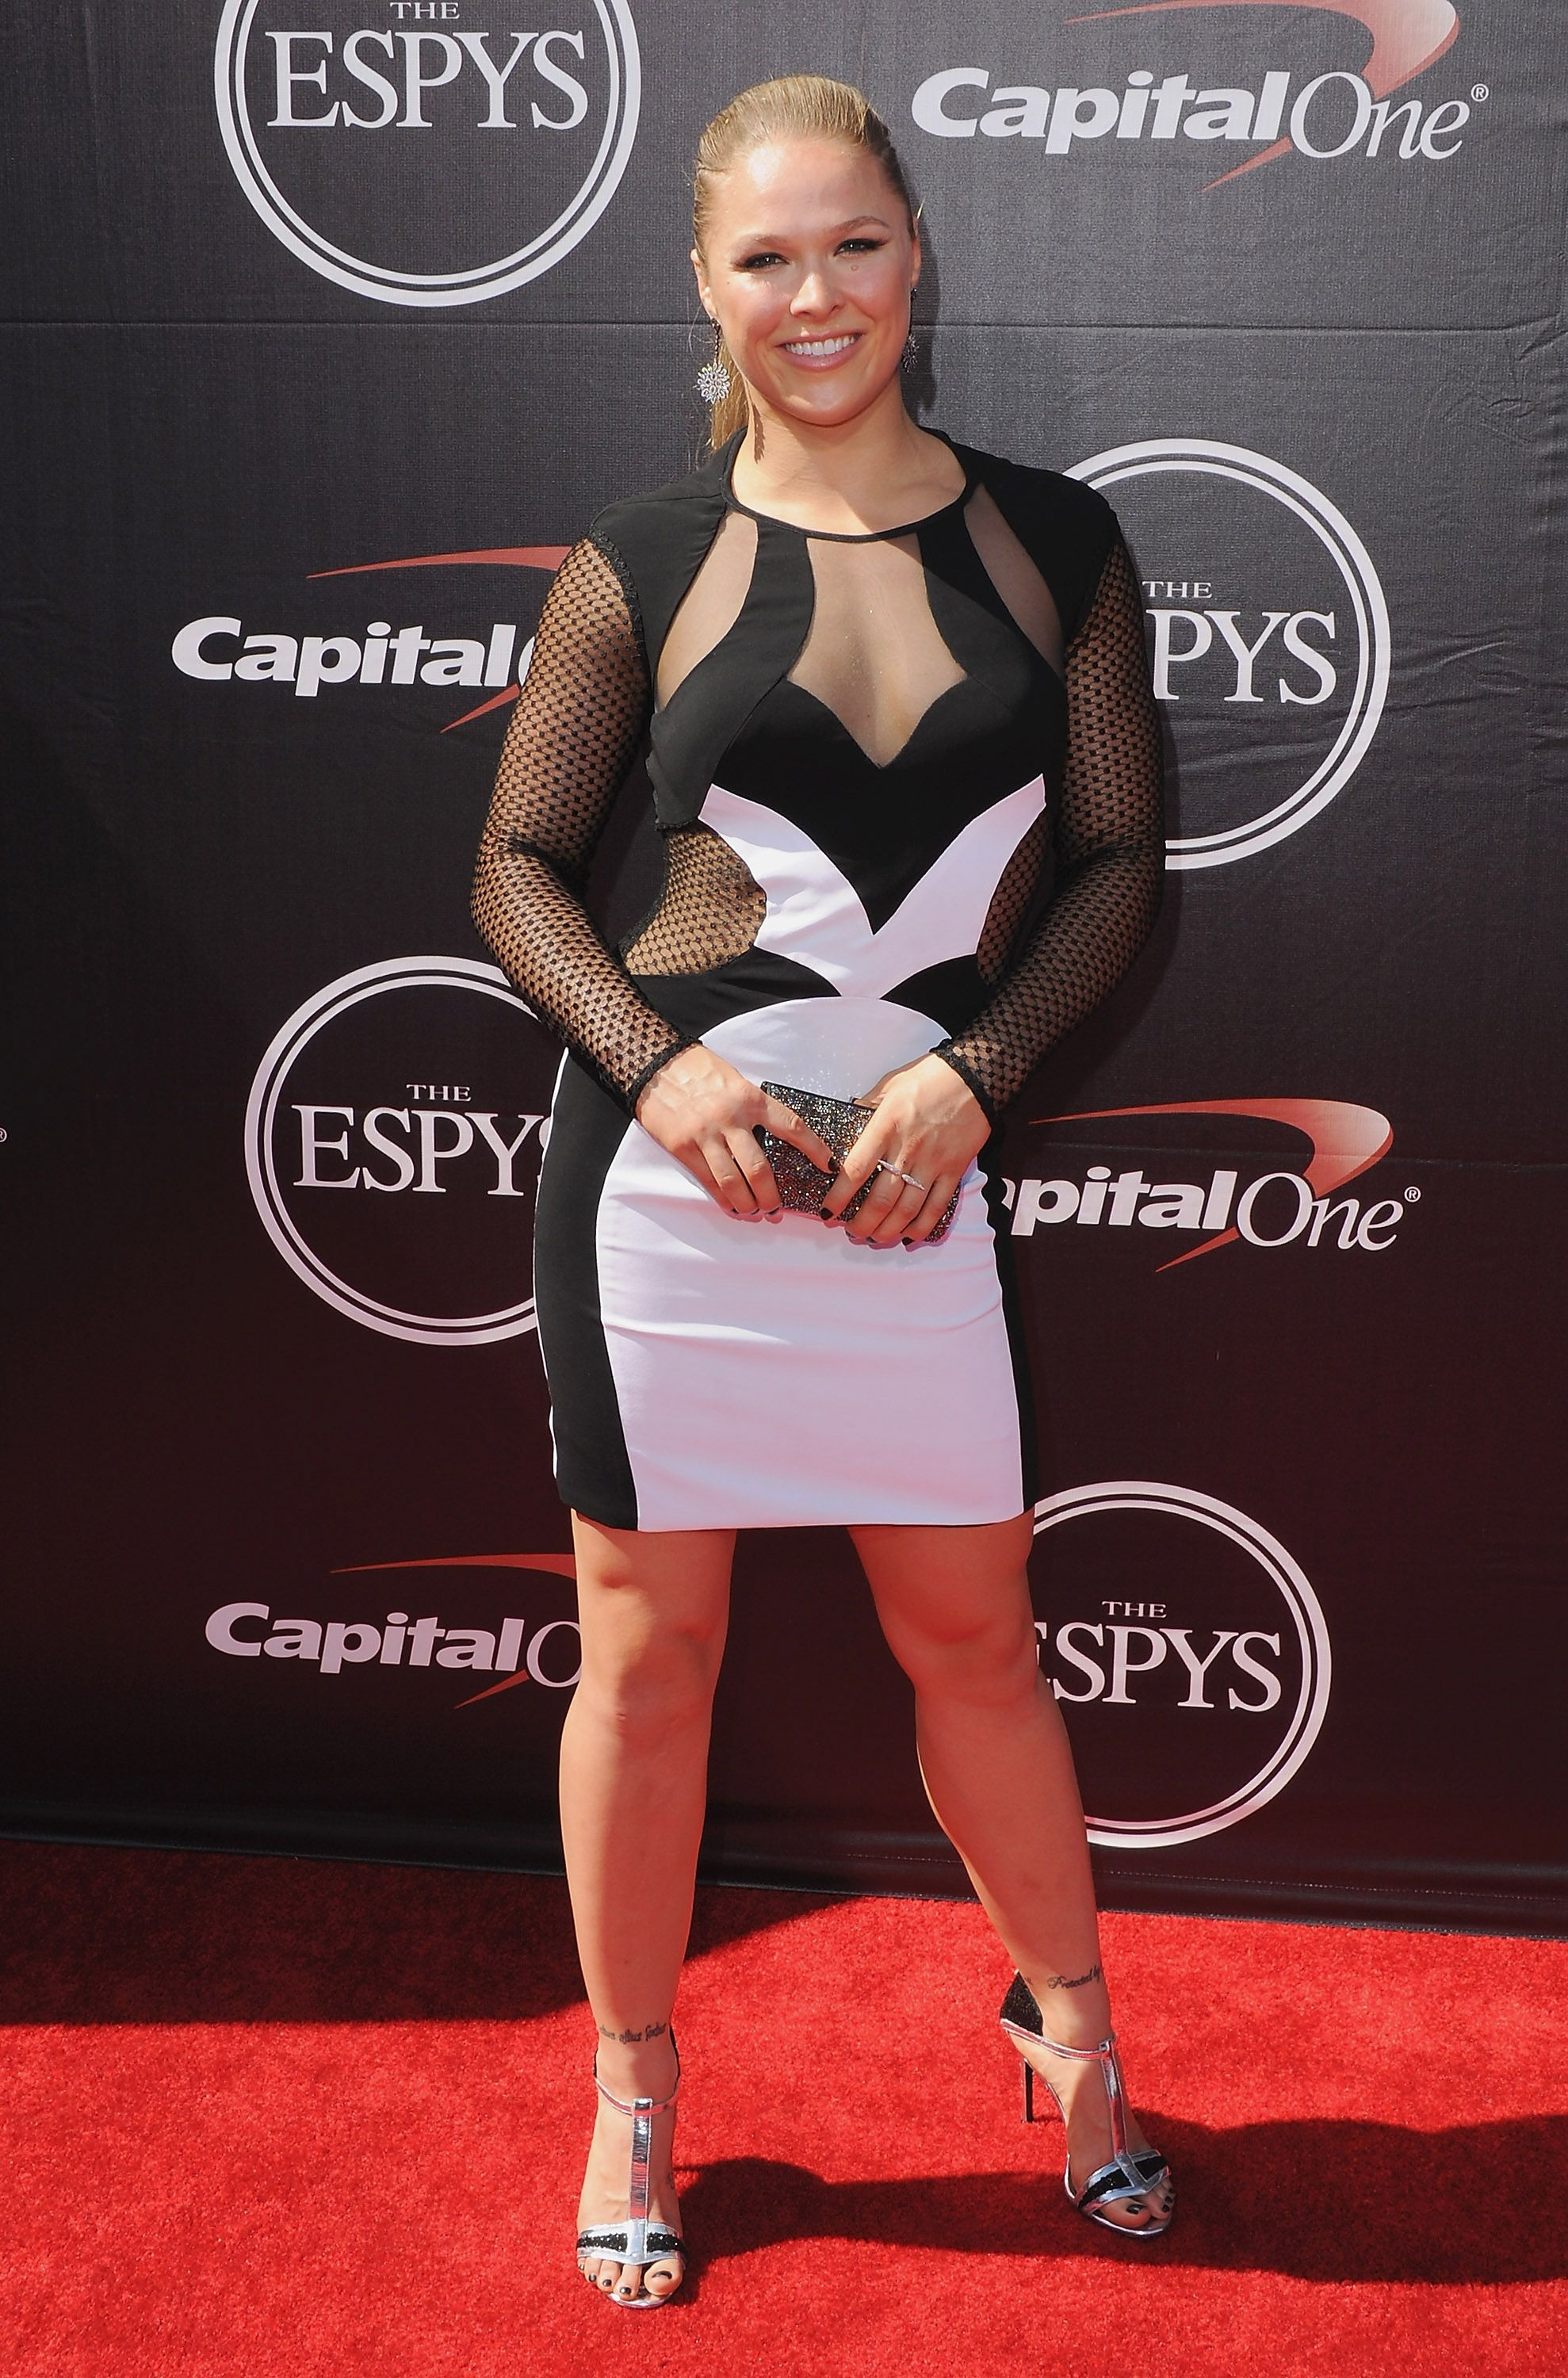 ronda rousey red carpet dress photo - 1